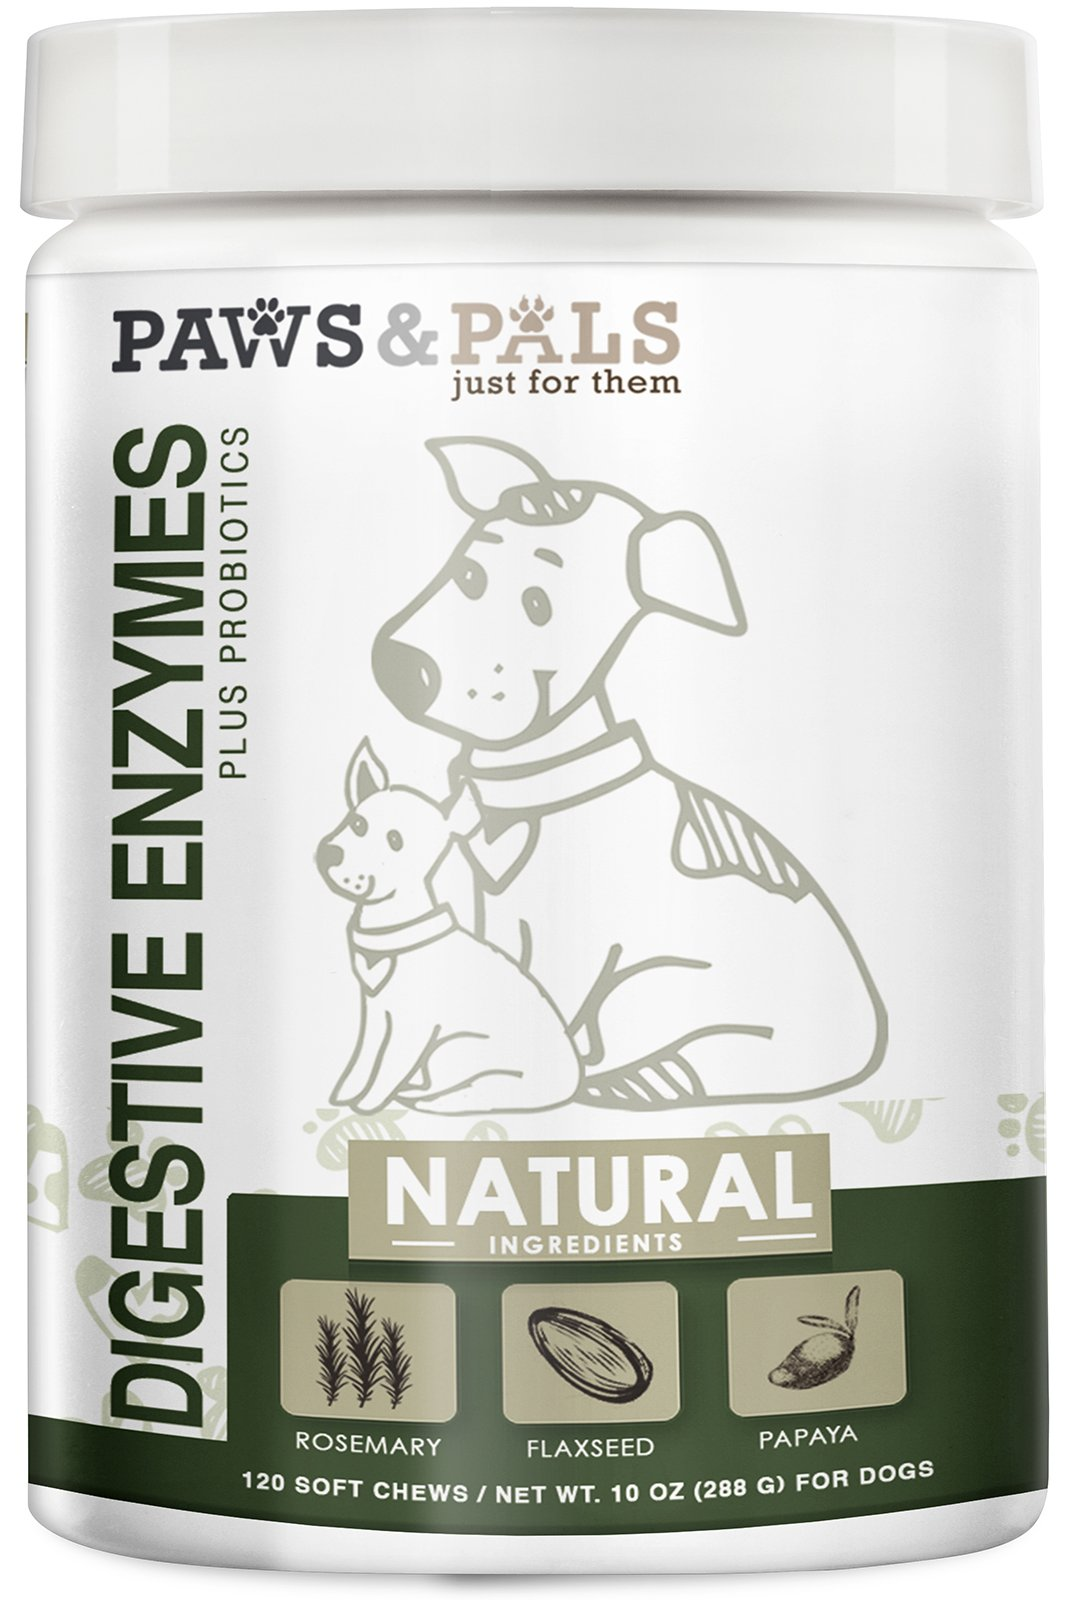 Dog Digestive Enzymes Plus Probiotics Soft Chew Vitamins with Rosemary, Flax Seed, Papaya - 120 Count